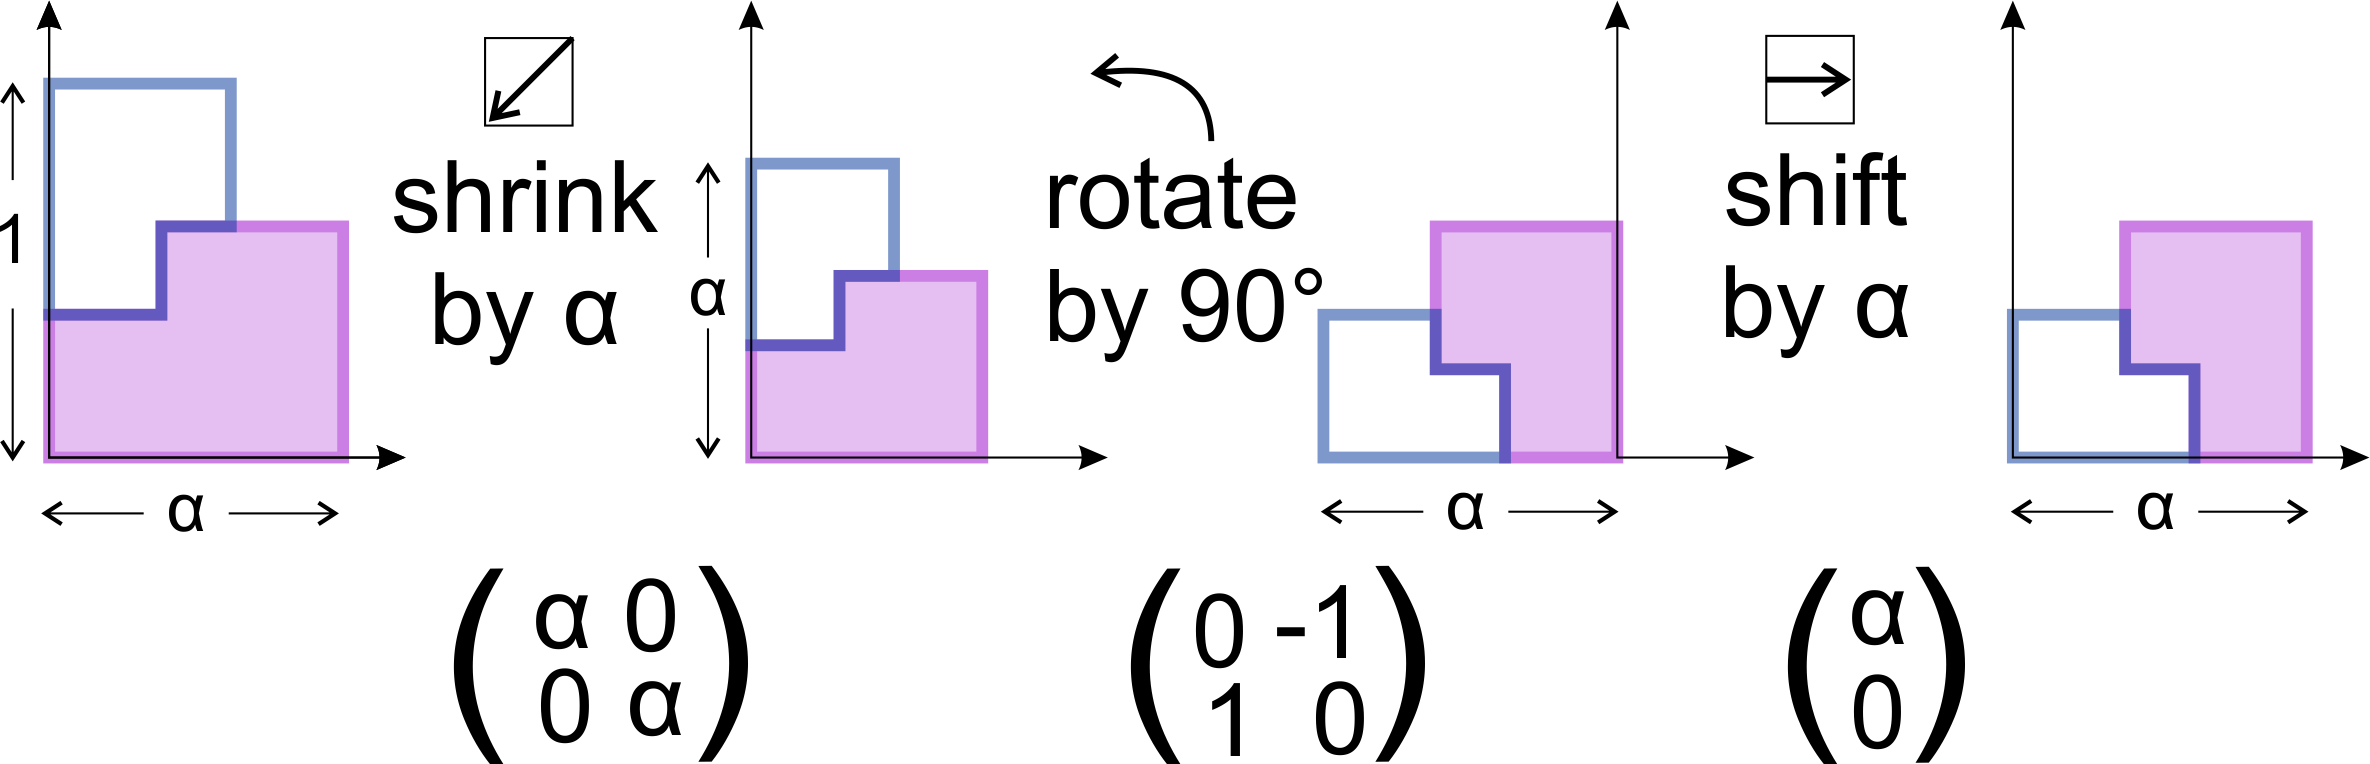 Steps to transform to the purple tile